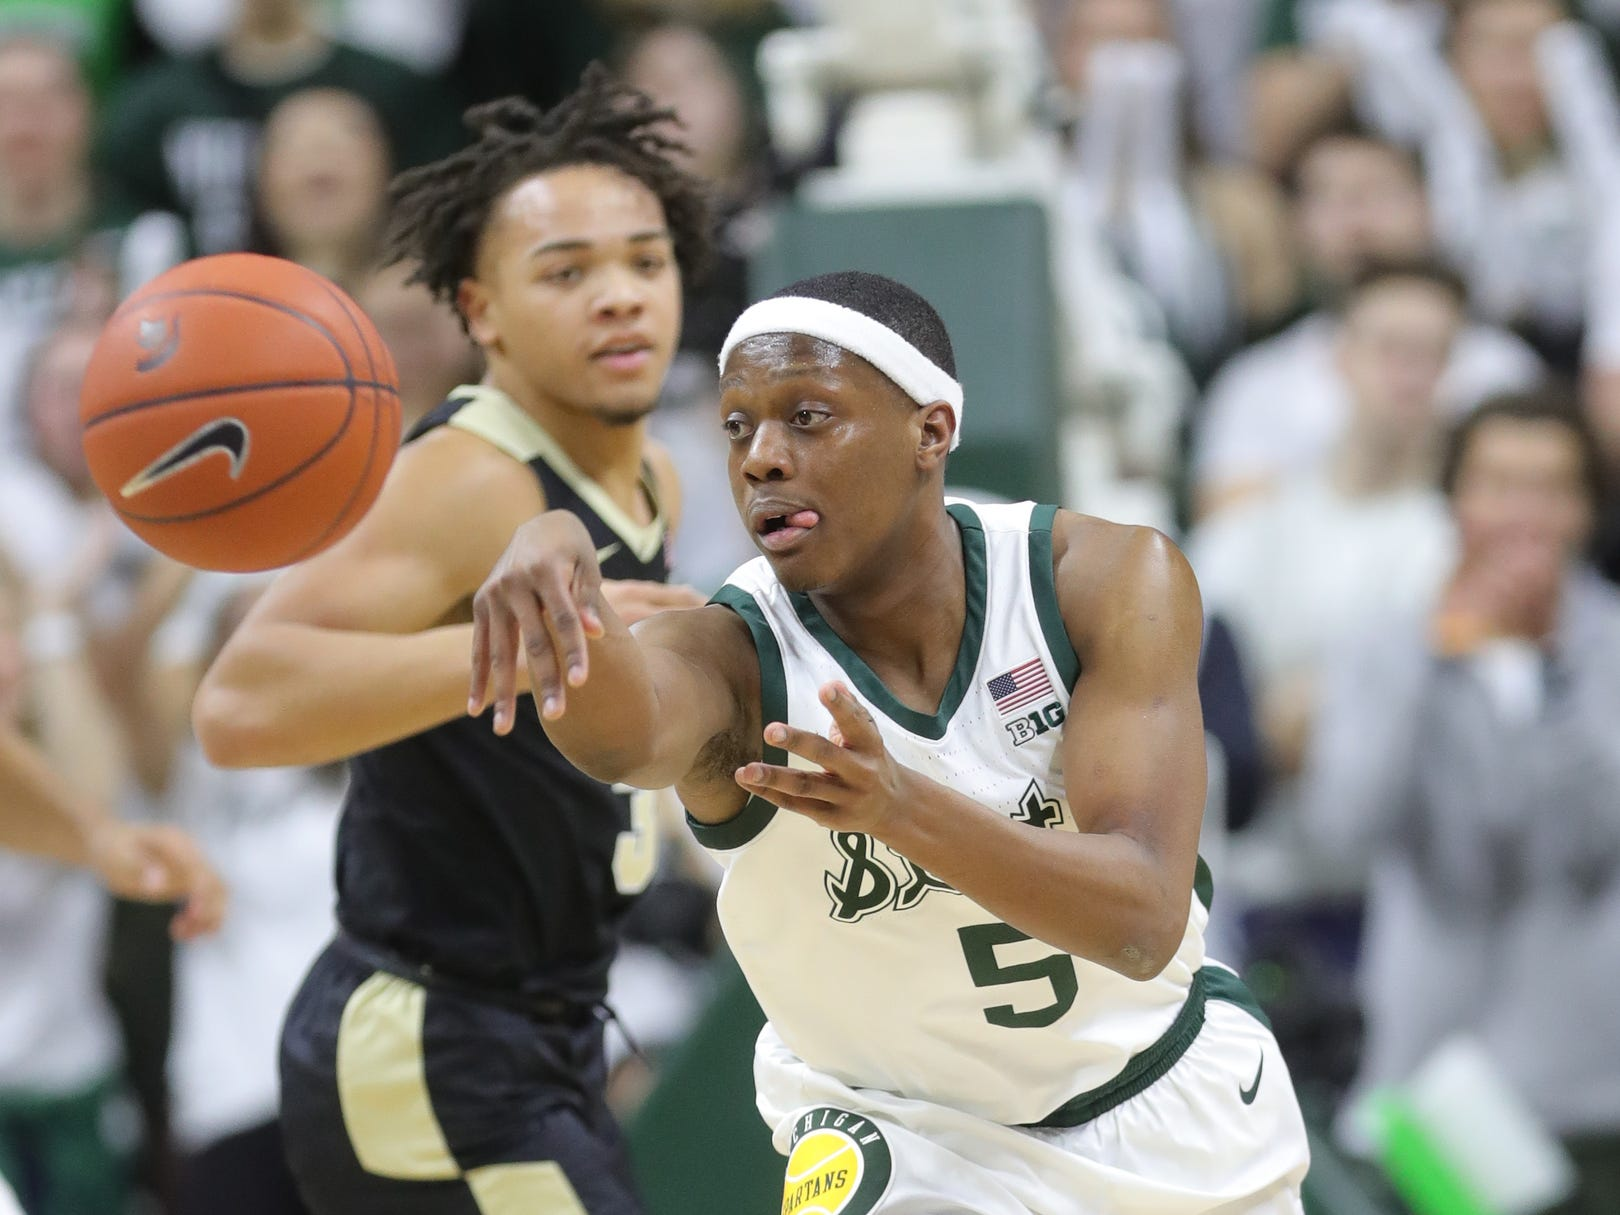 Michigan State guard Cassius Winston steals the ball from Purdue guard Carsen Edwards during first half action Tuesday, Jan. 8, 2019 at the Breslin Center in East Lansing, Mich.